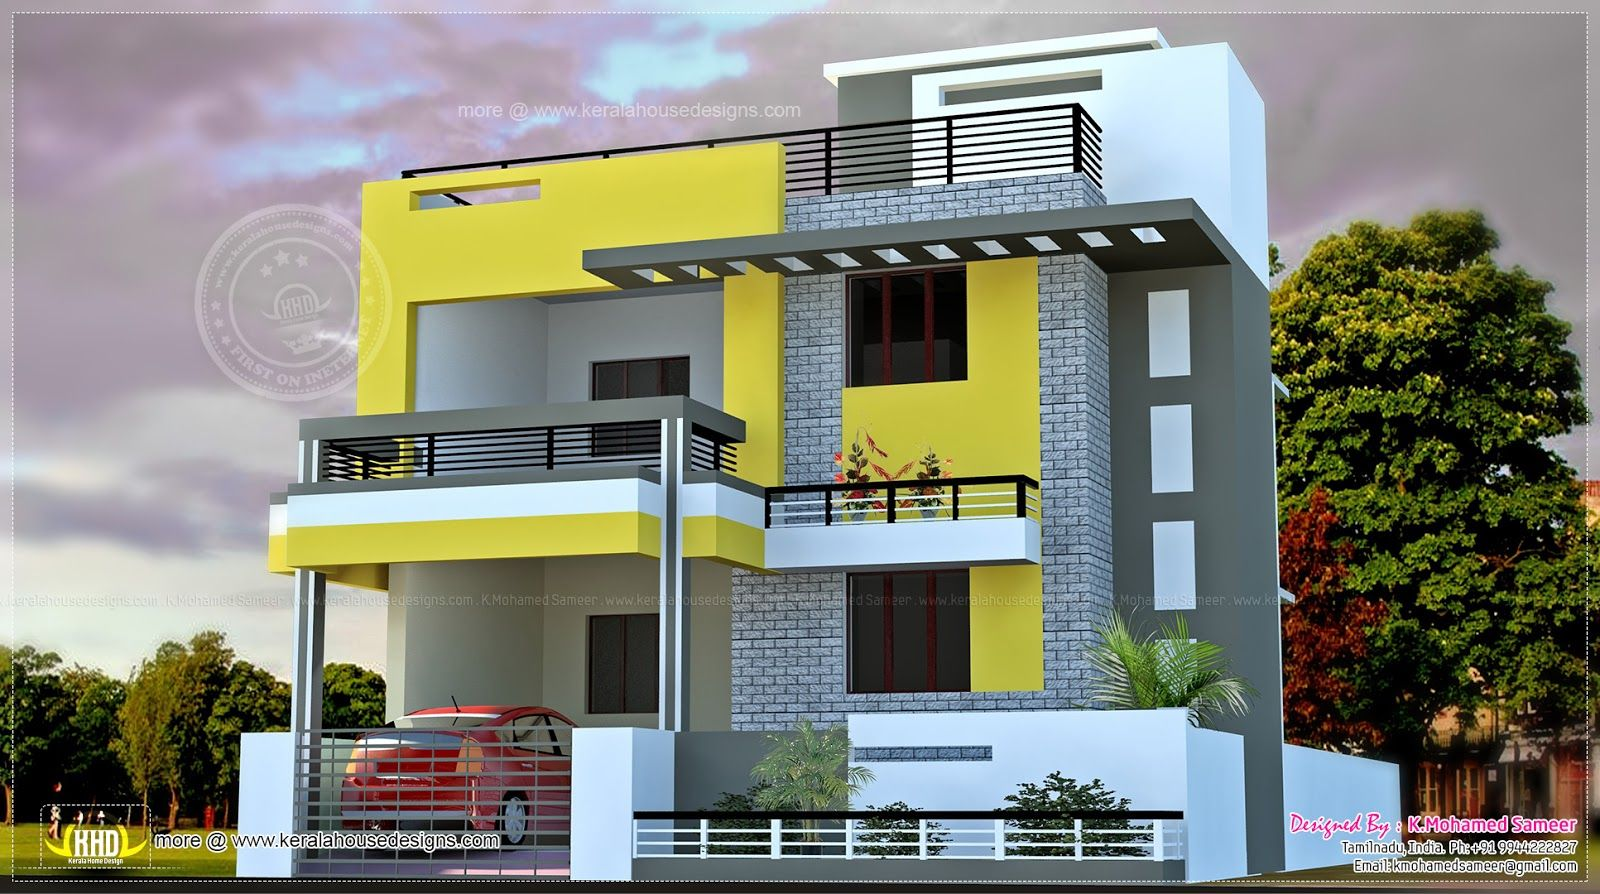 Elevations of residential buildings in indian photo for Modern residential house plans